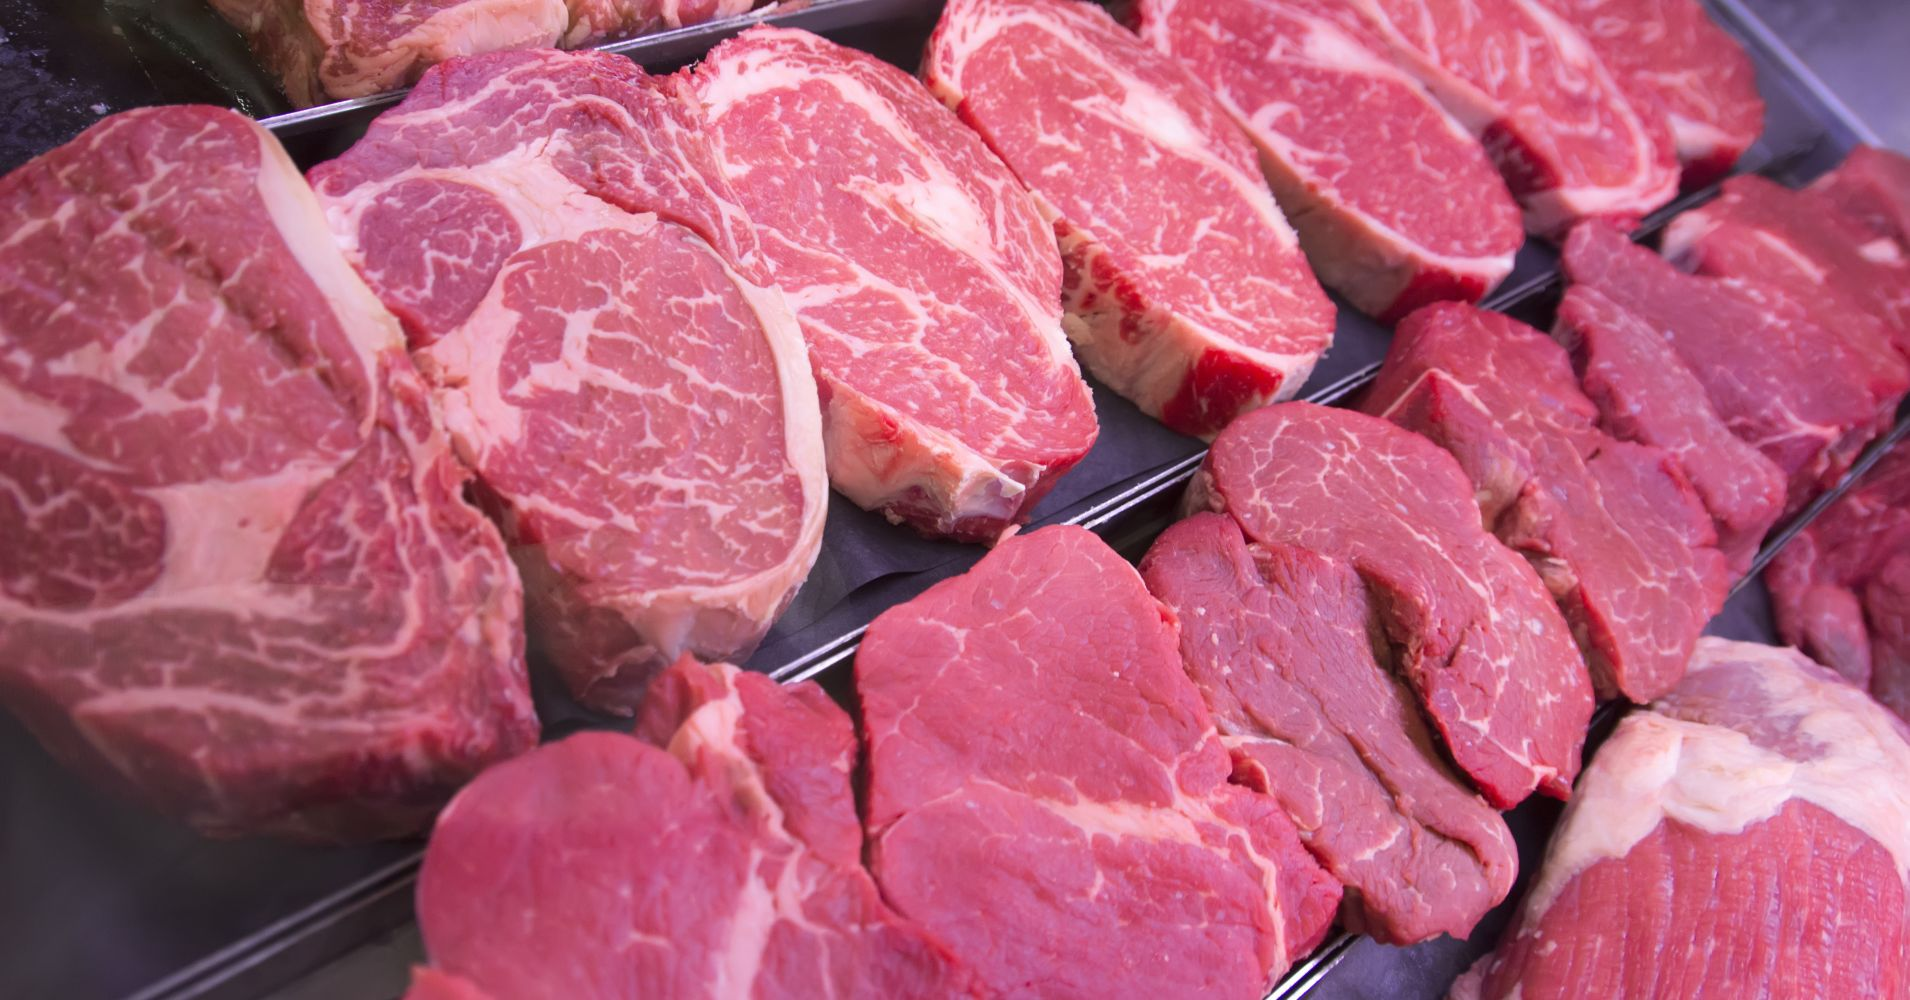 Red Meat. Good or Bad?